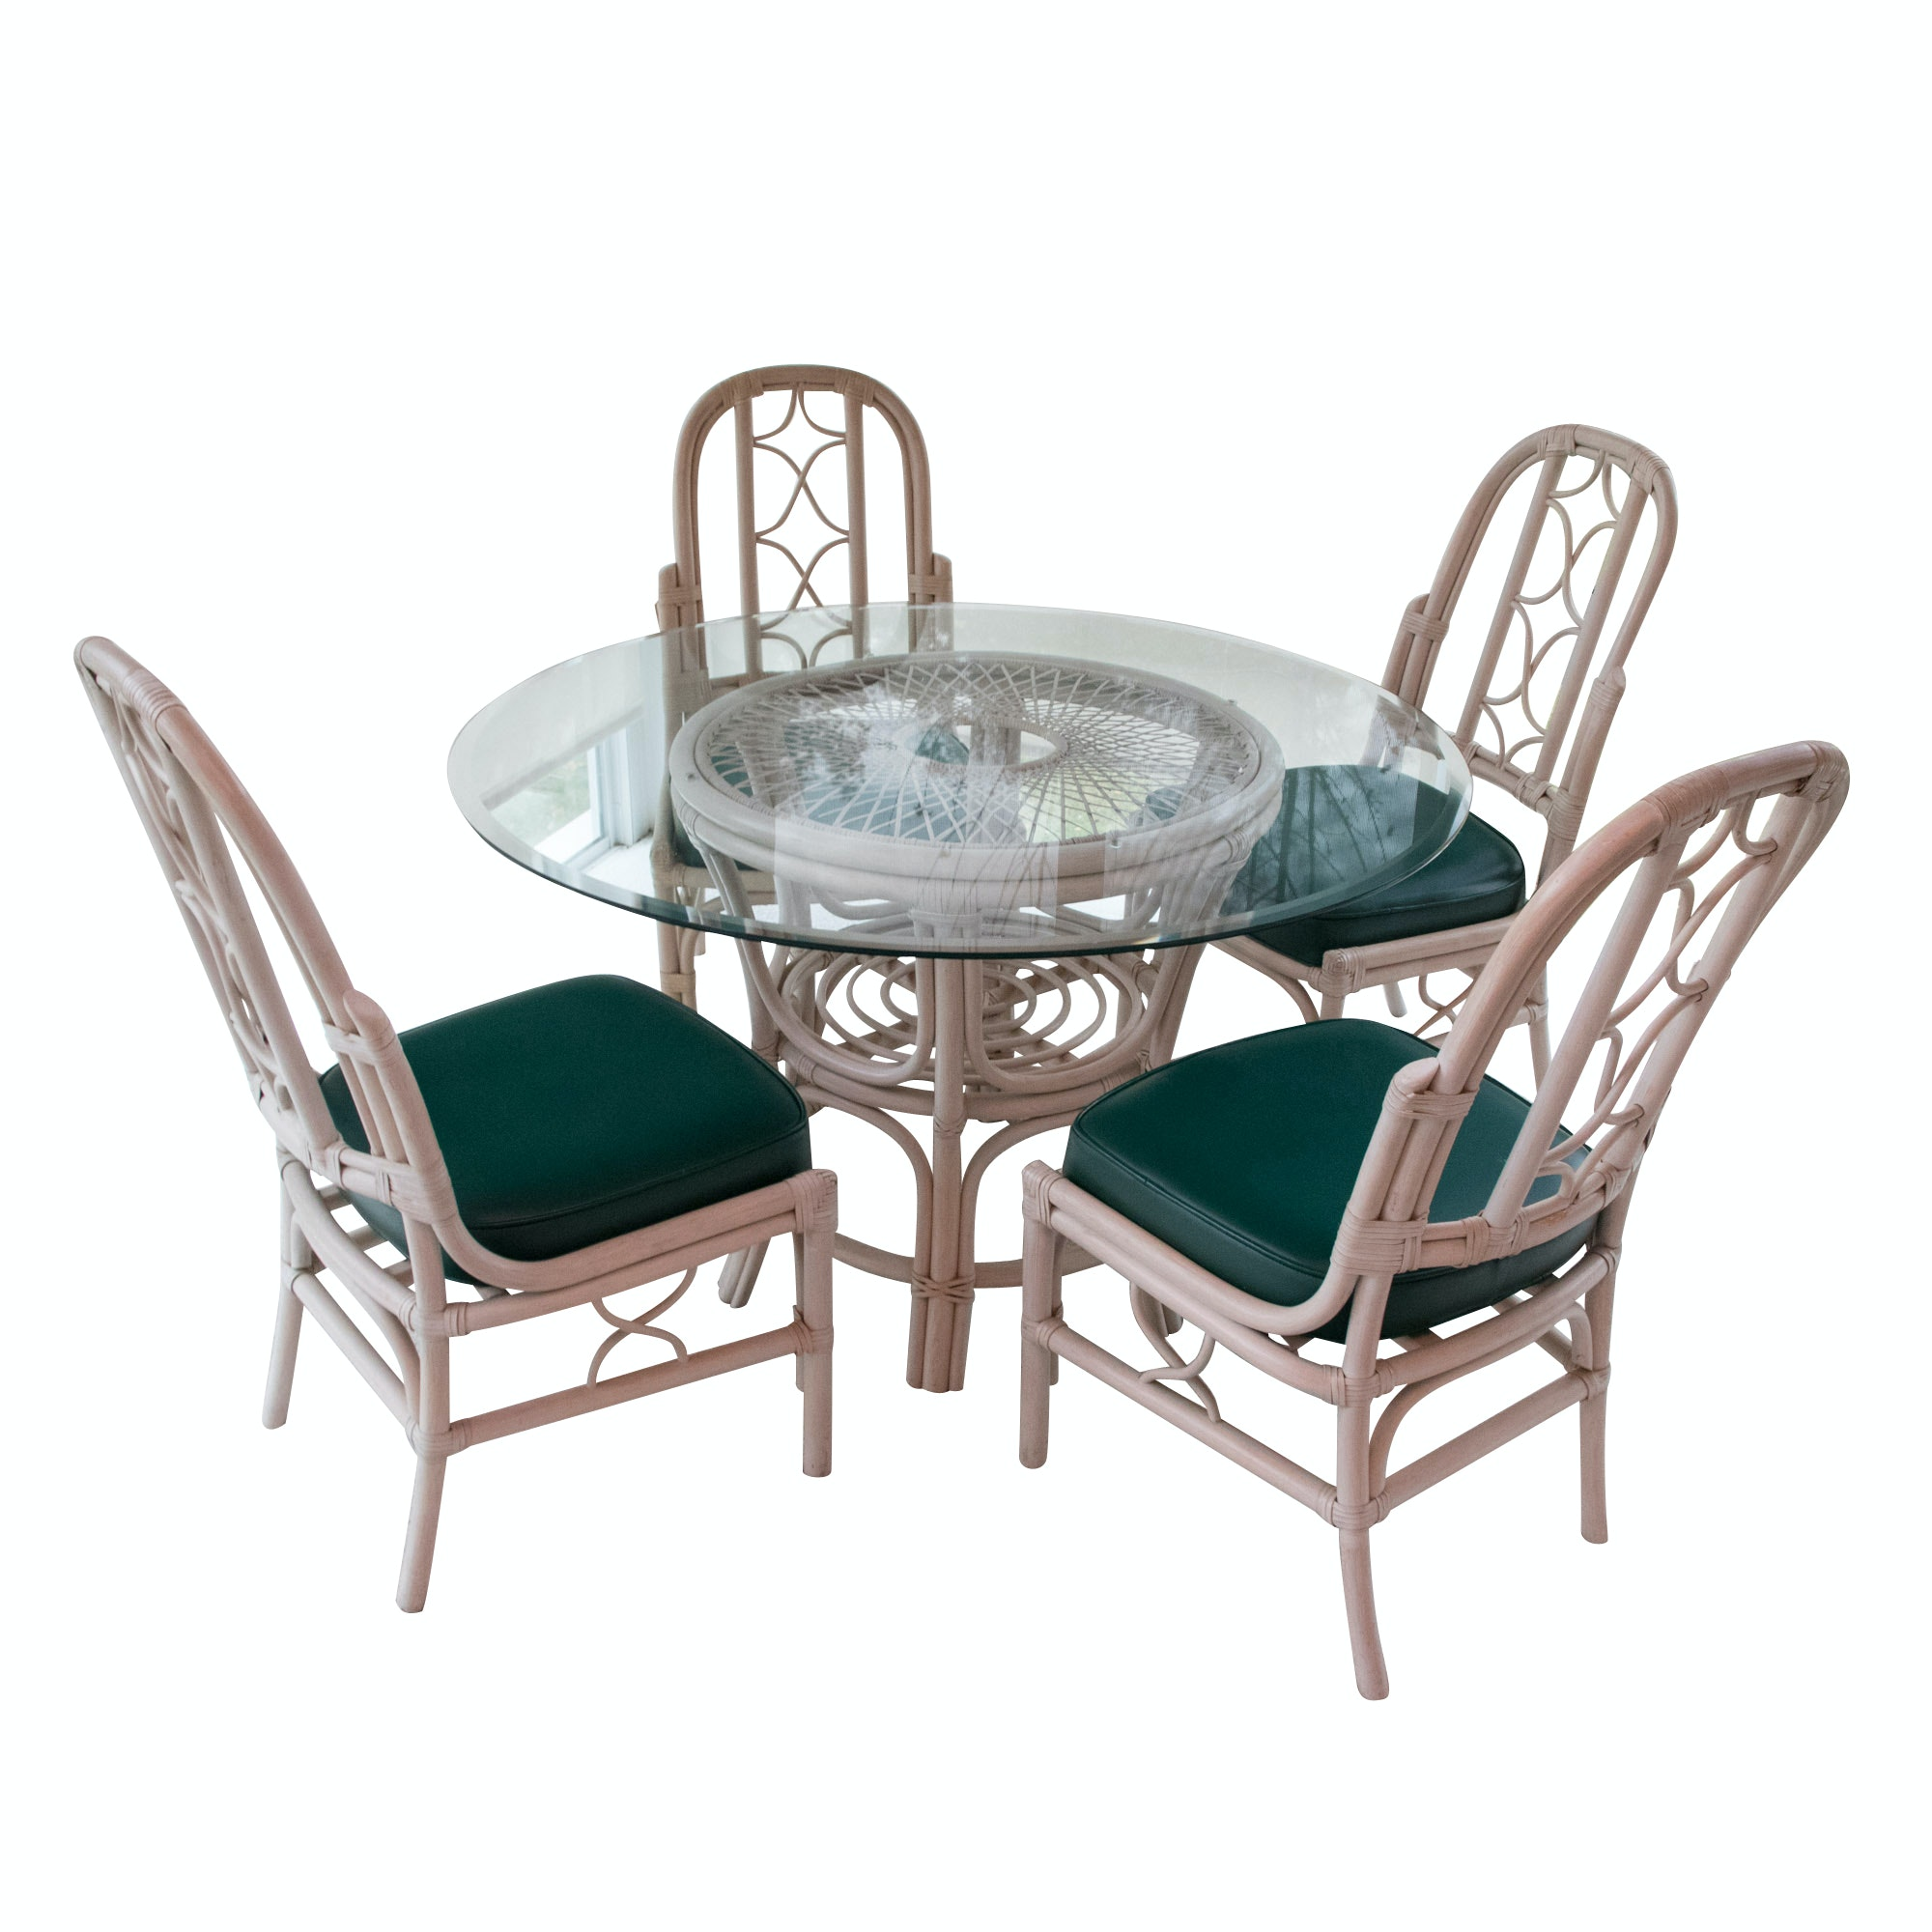 Four Rattan Chairs and Glass Top Table, 20th Century